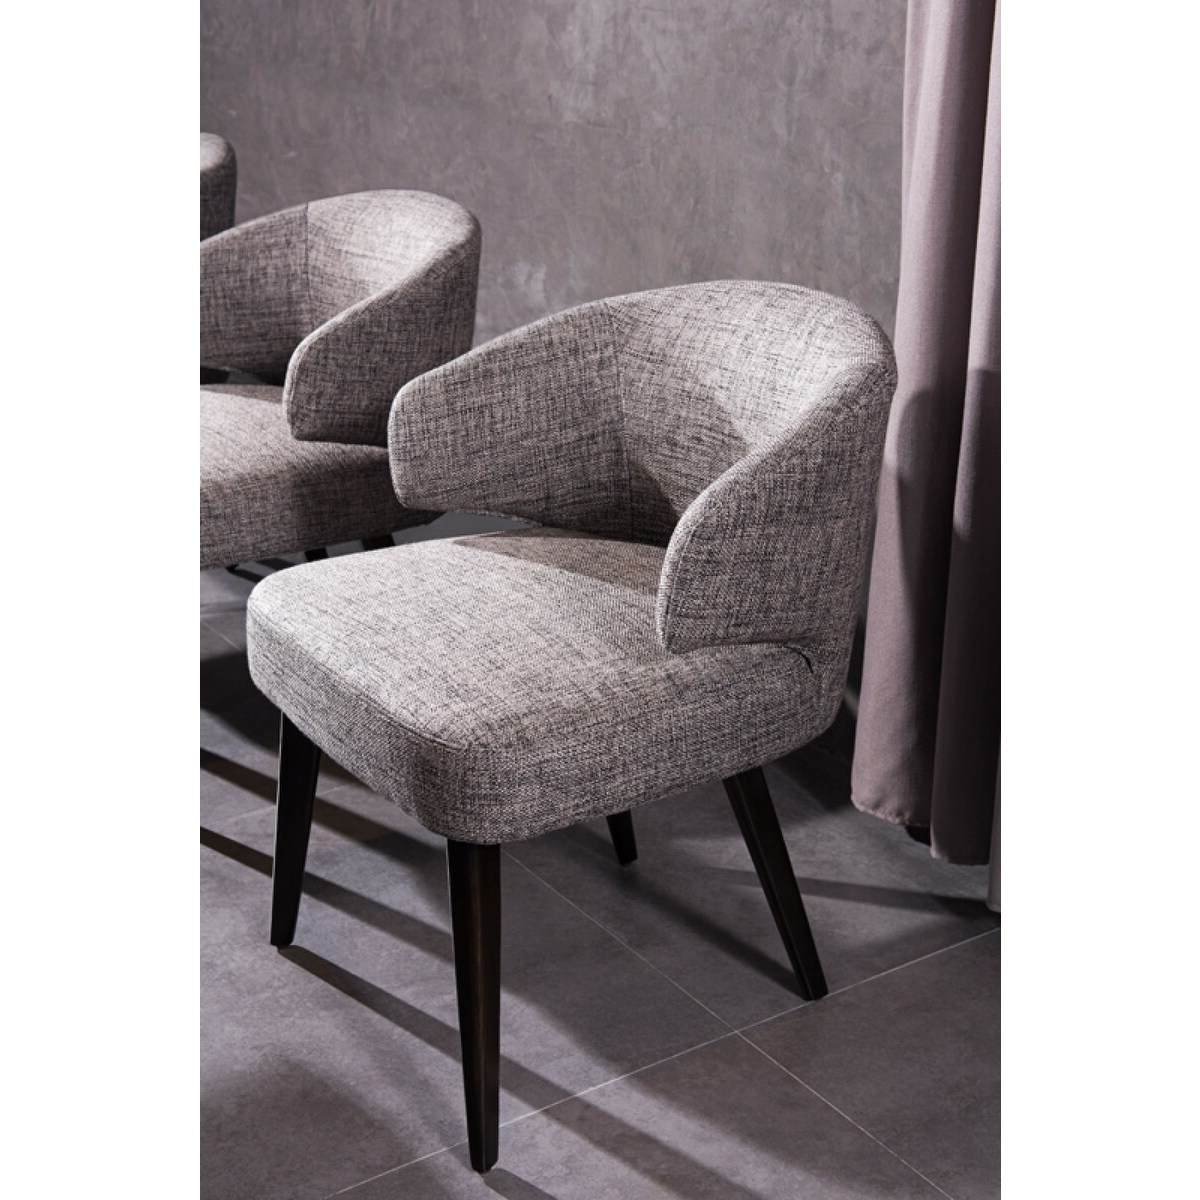 Modrest Carlton Grey Fabric Dining Chair Within Widely Used Carlton Wood Leg Upholstered Dining Chairs (View 5 of 20)